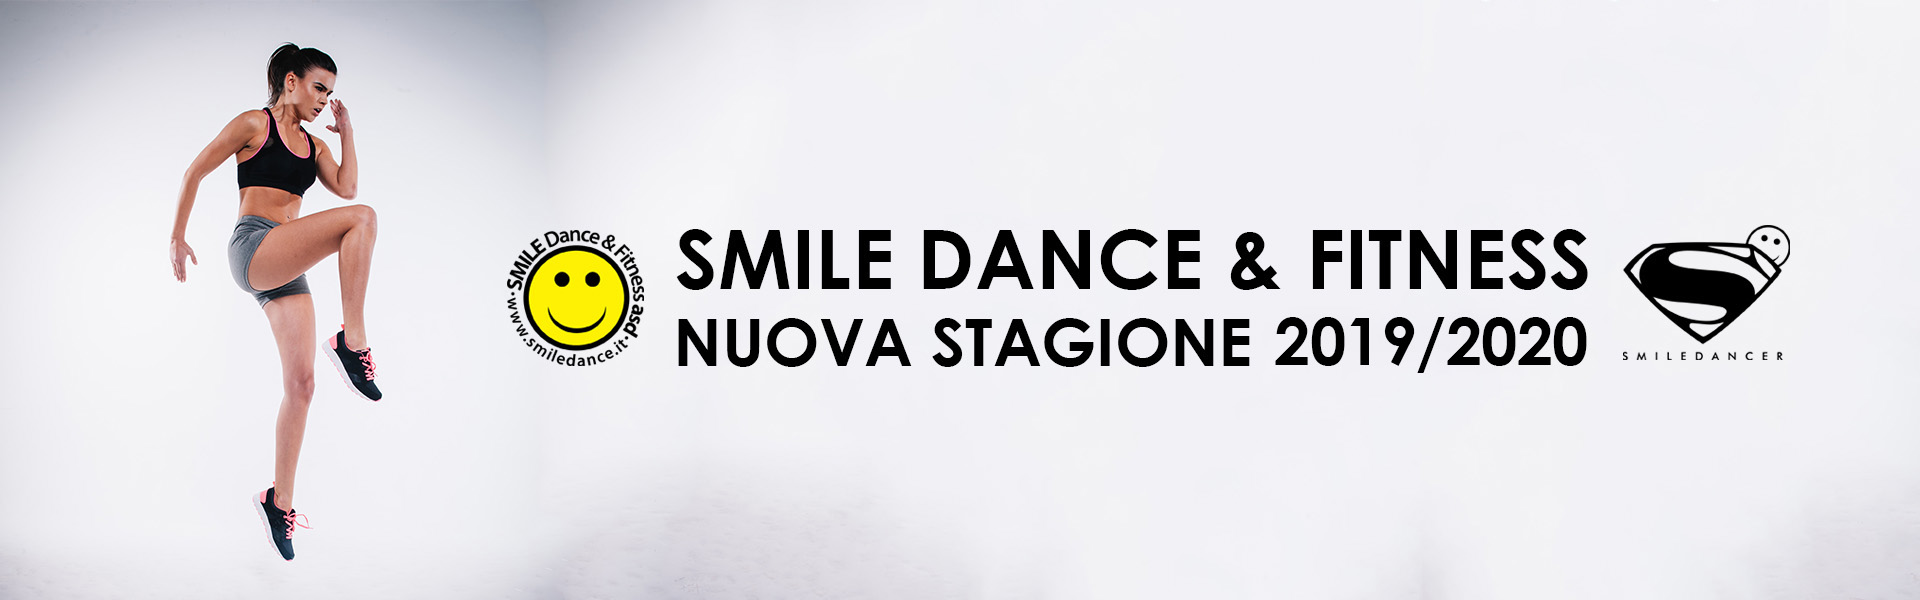 smile dance & fitness stagione 2019/2020